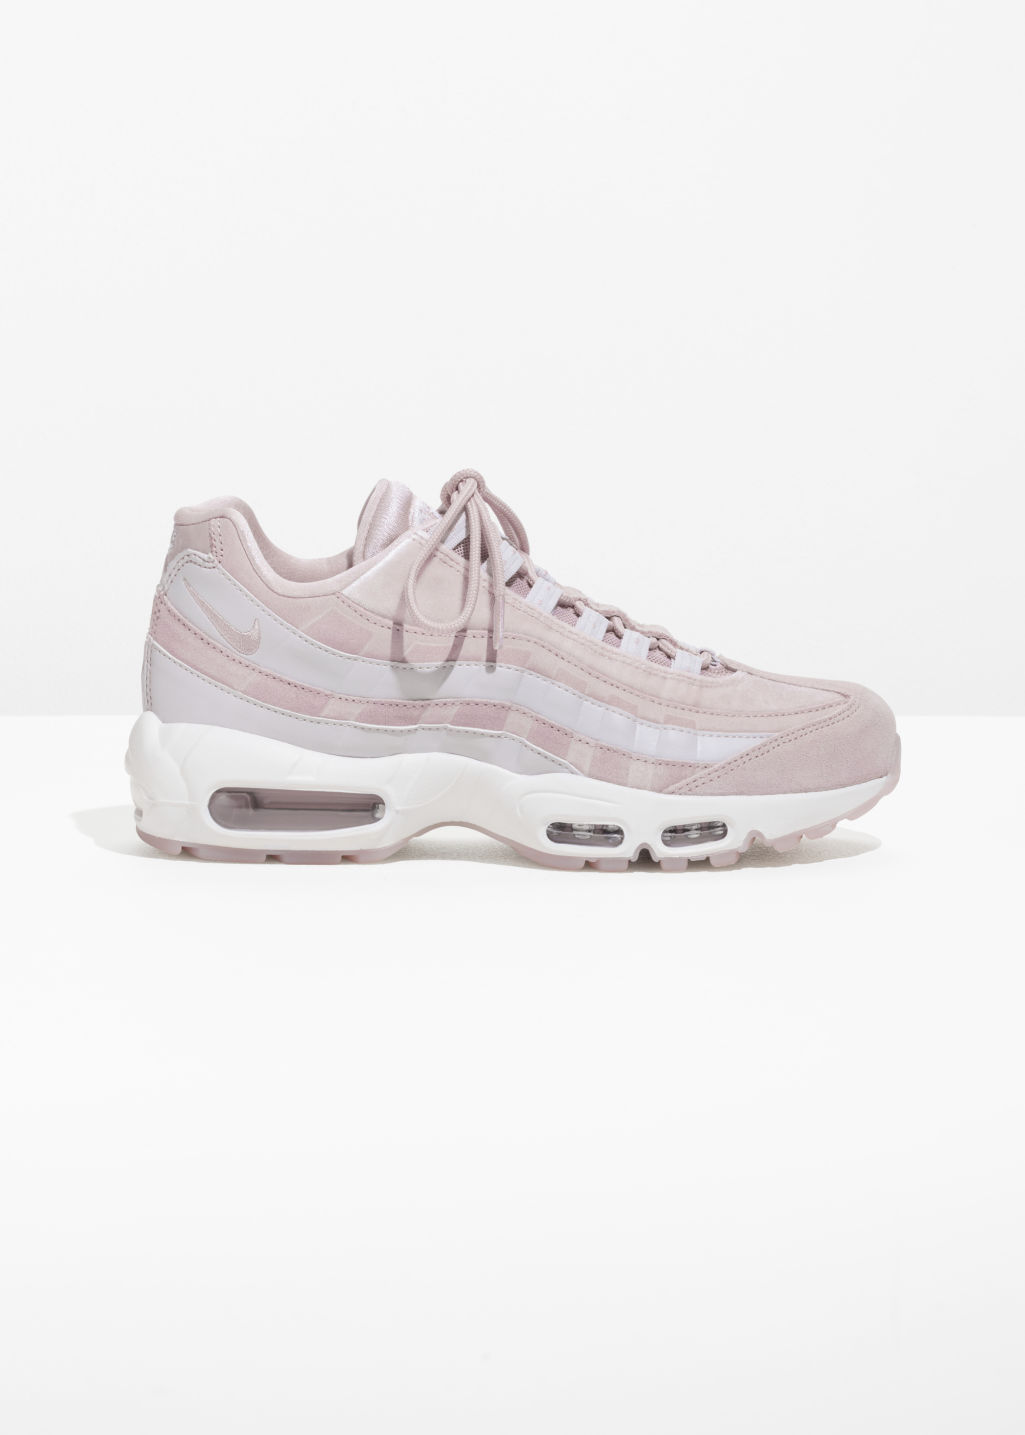 & OTHER STORIES Nike Air Max 95 Lx